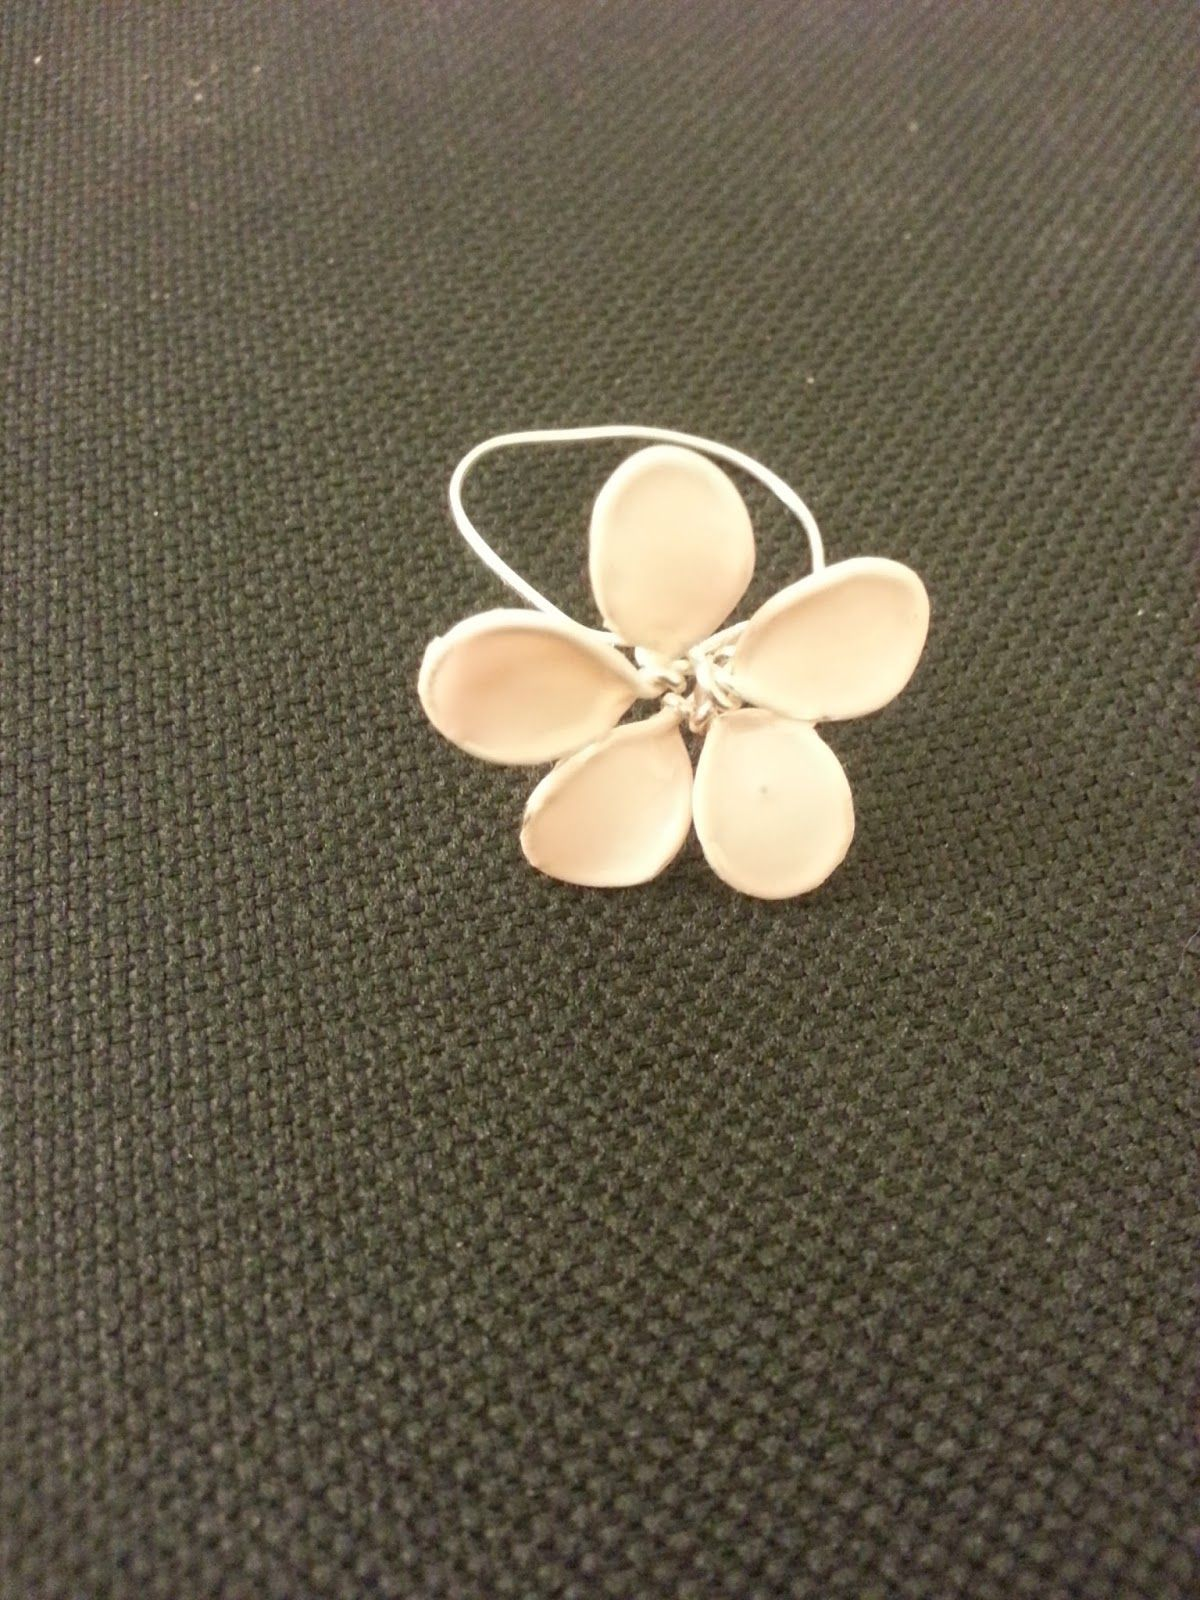 Wire Flower Nail Polish Ring Diy Crafts Pinterest Wire Flowers